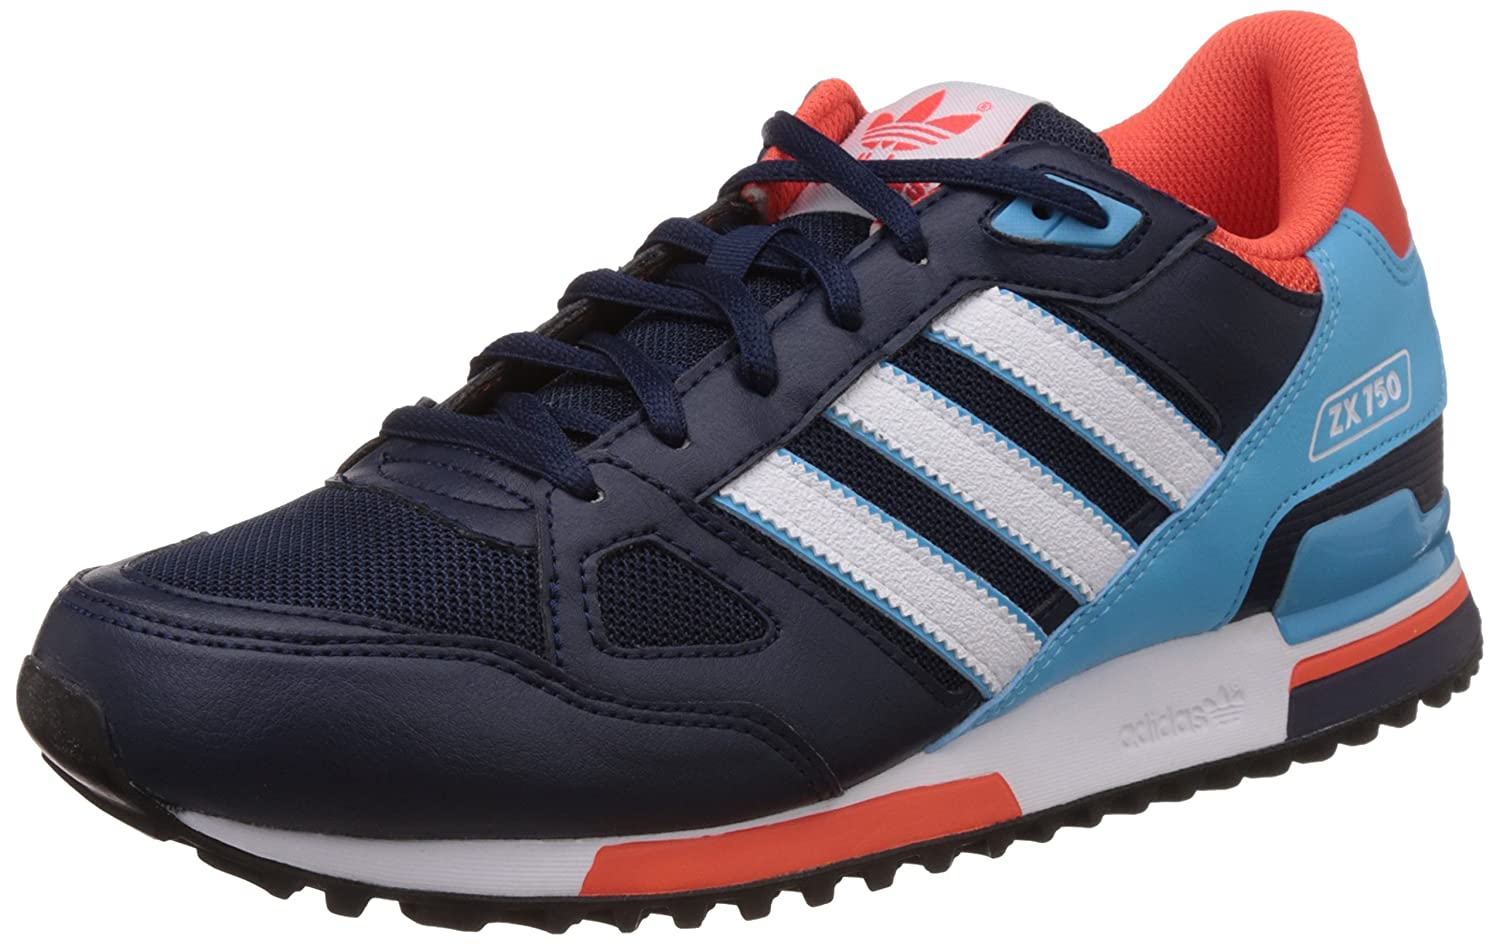 a6aee641a94f9 adidas Originals Men s Zx 750 Blue and White Running Shoes - 9 UK  Buy  Online at Low Prices in India - Amazon.in